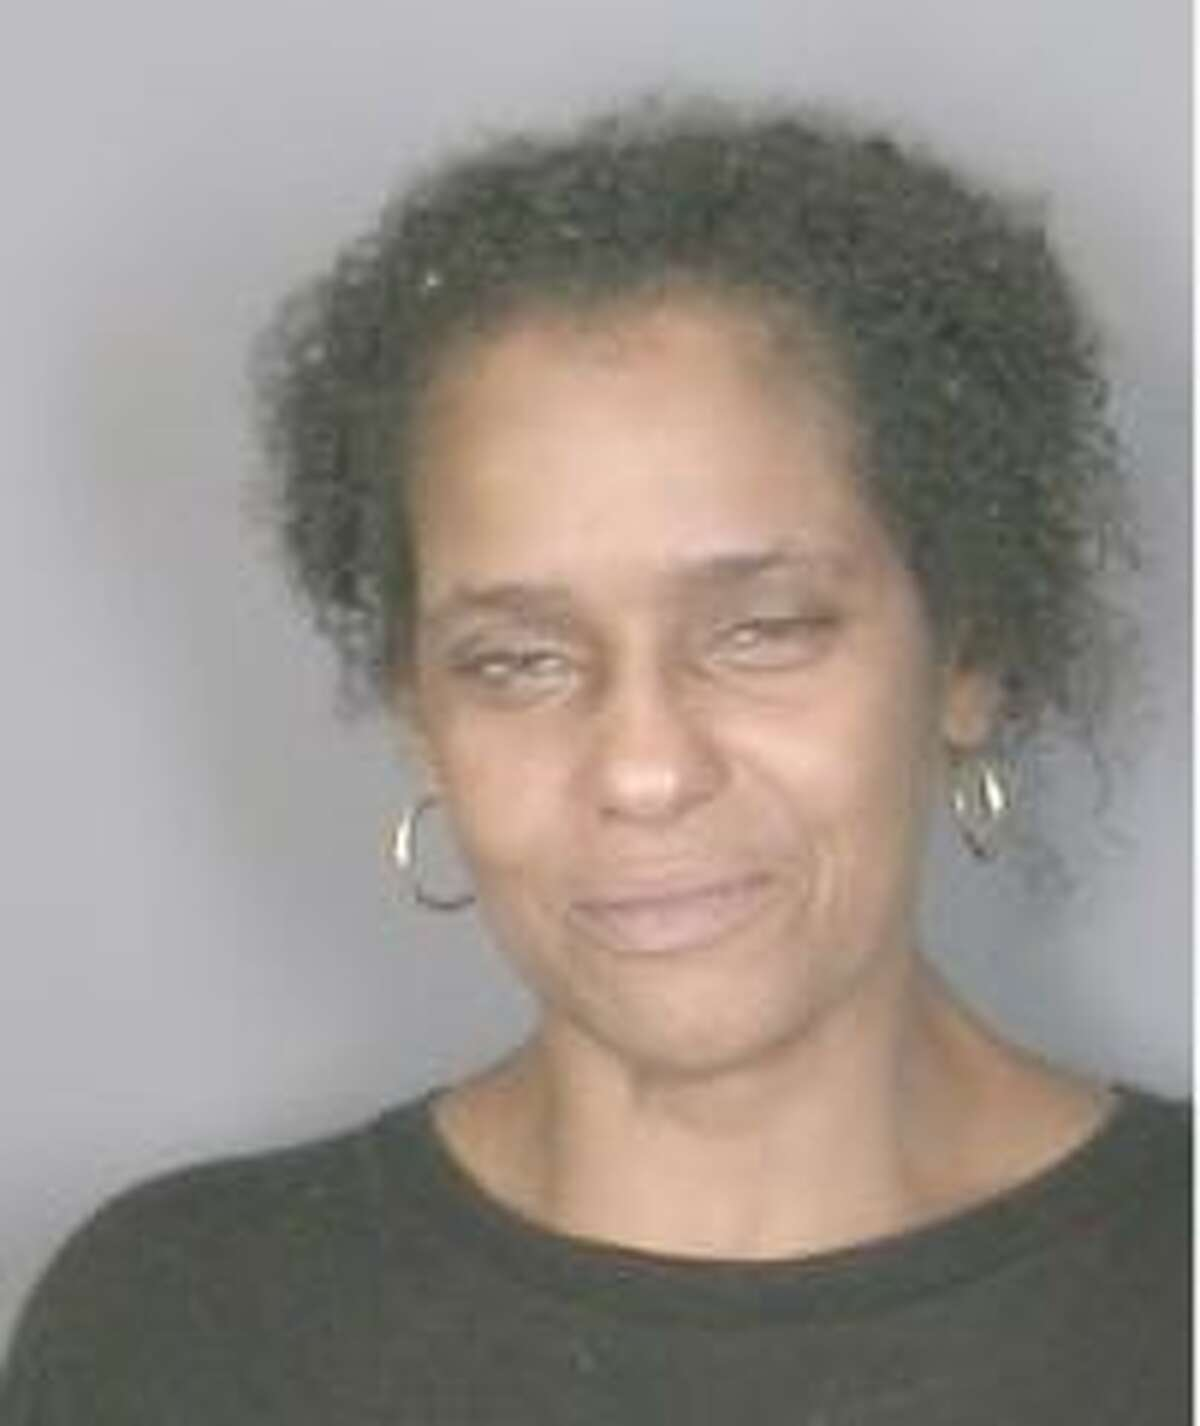 Seldora J. Miller was charged with felony DWI under Leandra's Law.